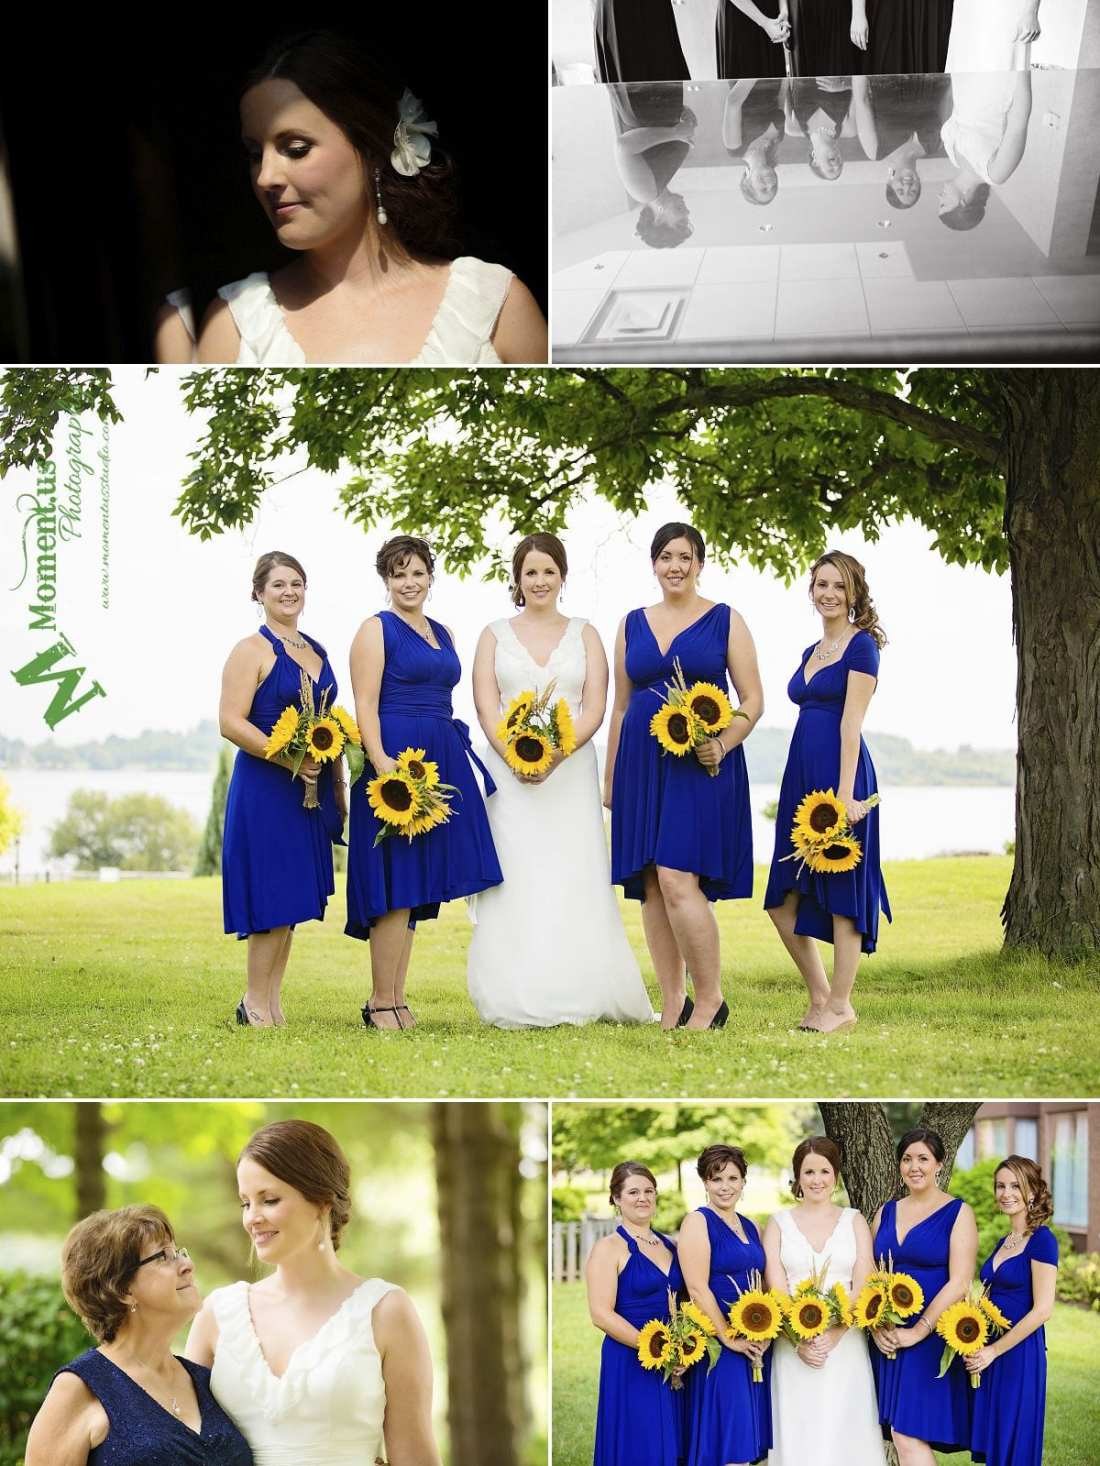 NAV Centre Cornwall weddings - bridesmaids holding sunflowers